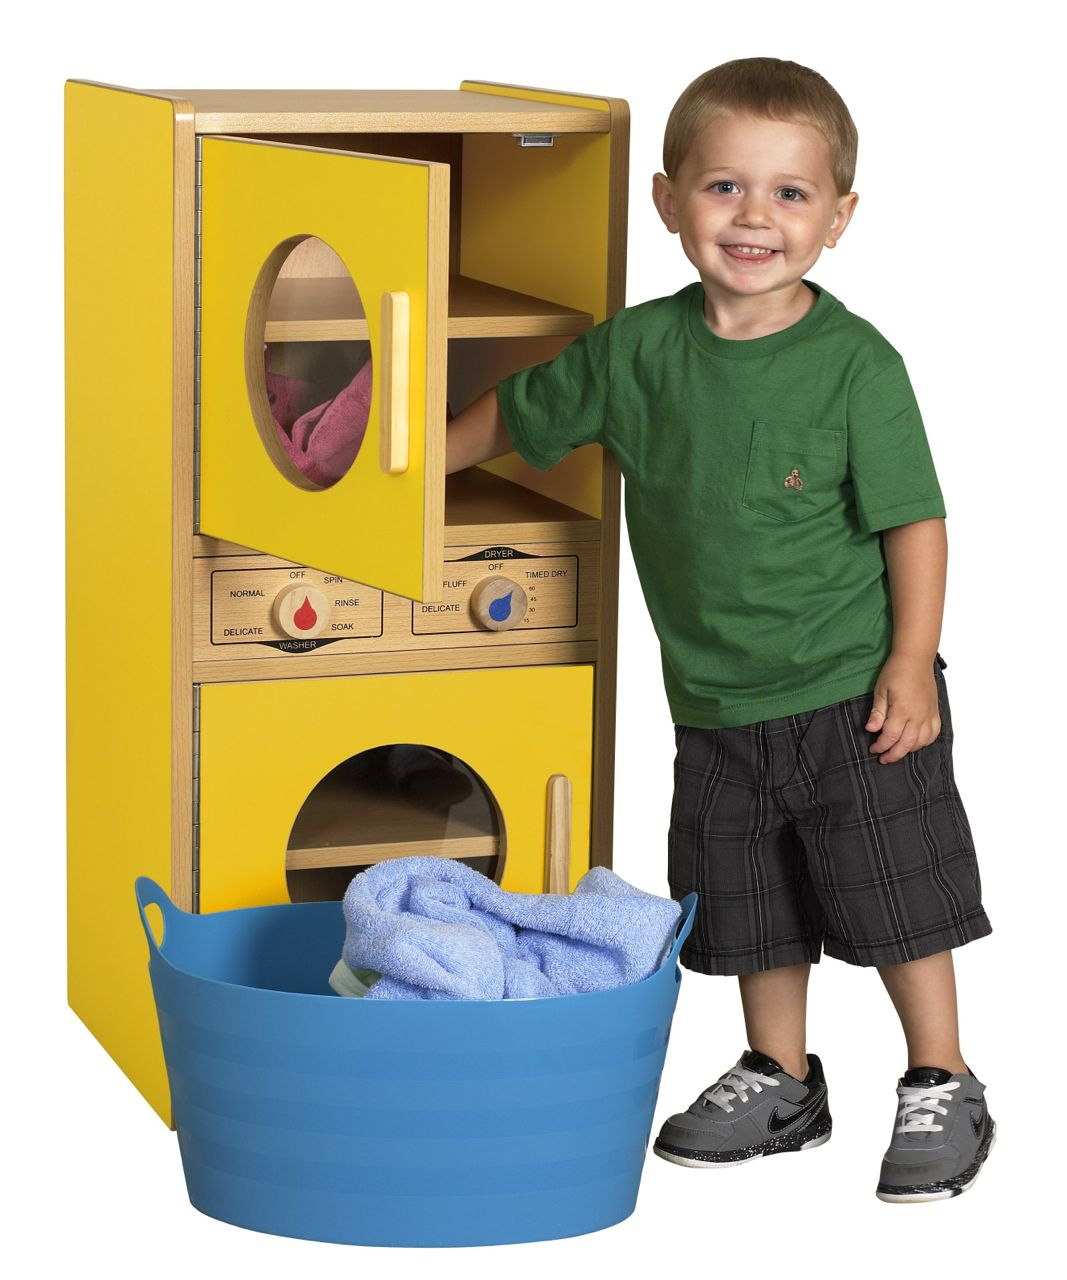 ecr4kids colorful essentials play kitchen washer dryer aaa state of play. Black Bedroom Furniture Sets. Home Design Ideas